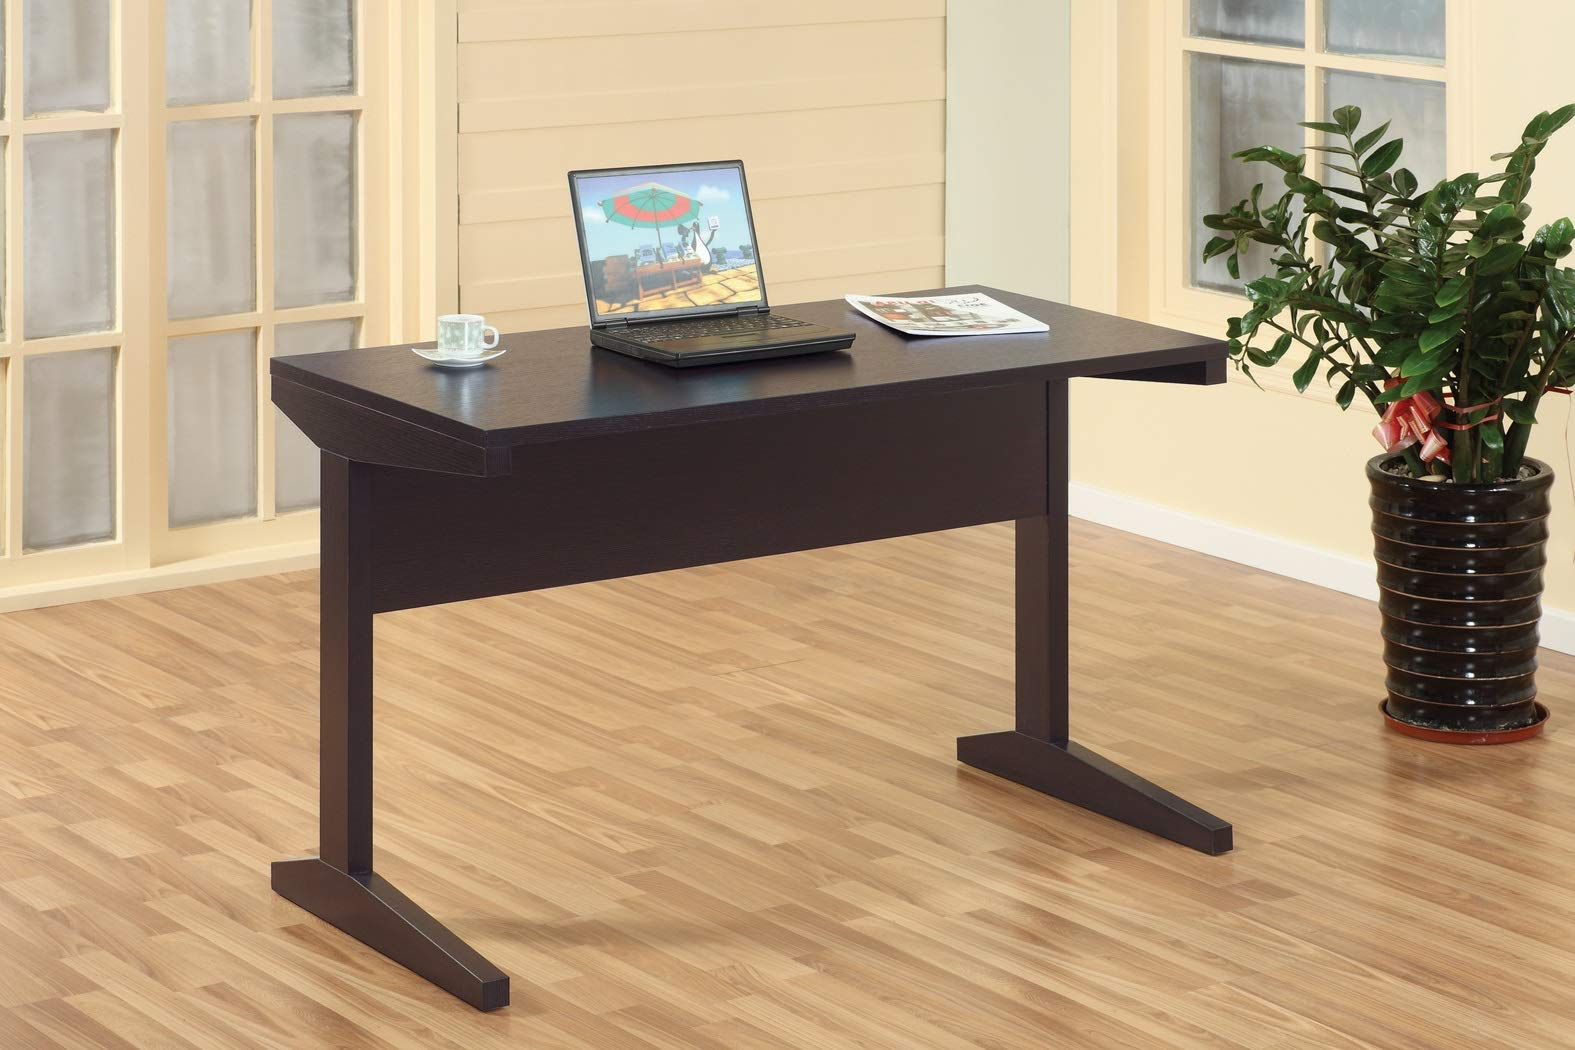 Major-Q Id8011447 Modern Contemporary Design 30'' H Wooden Desk Workstation Espresso Finish with Wide Leg for Additional Support